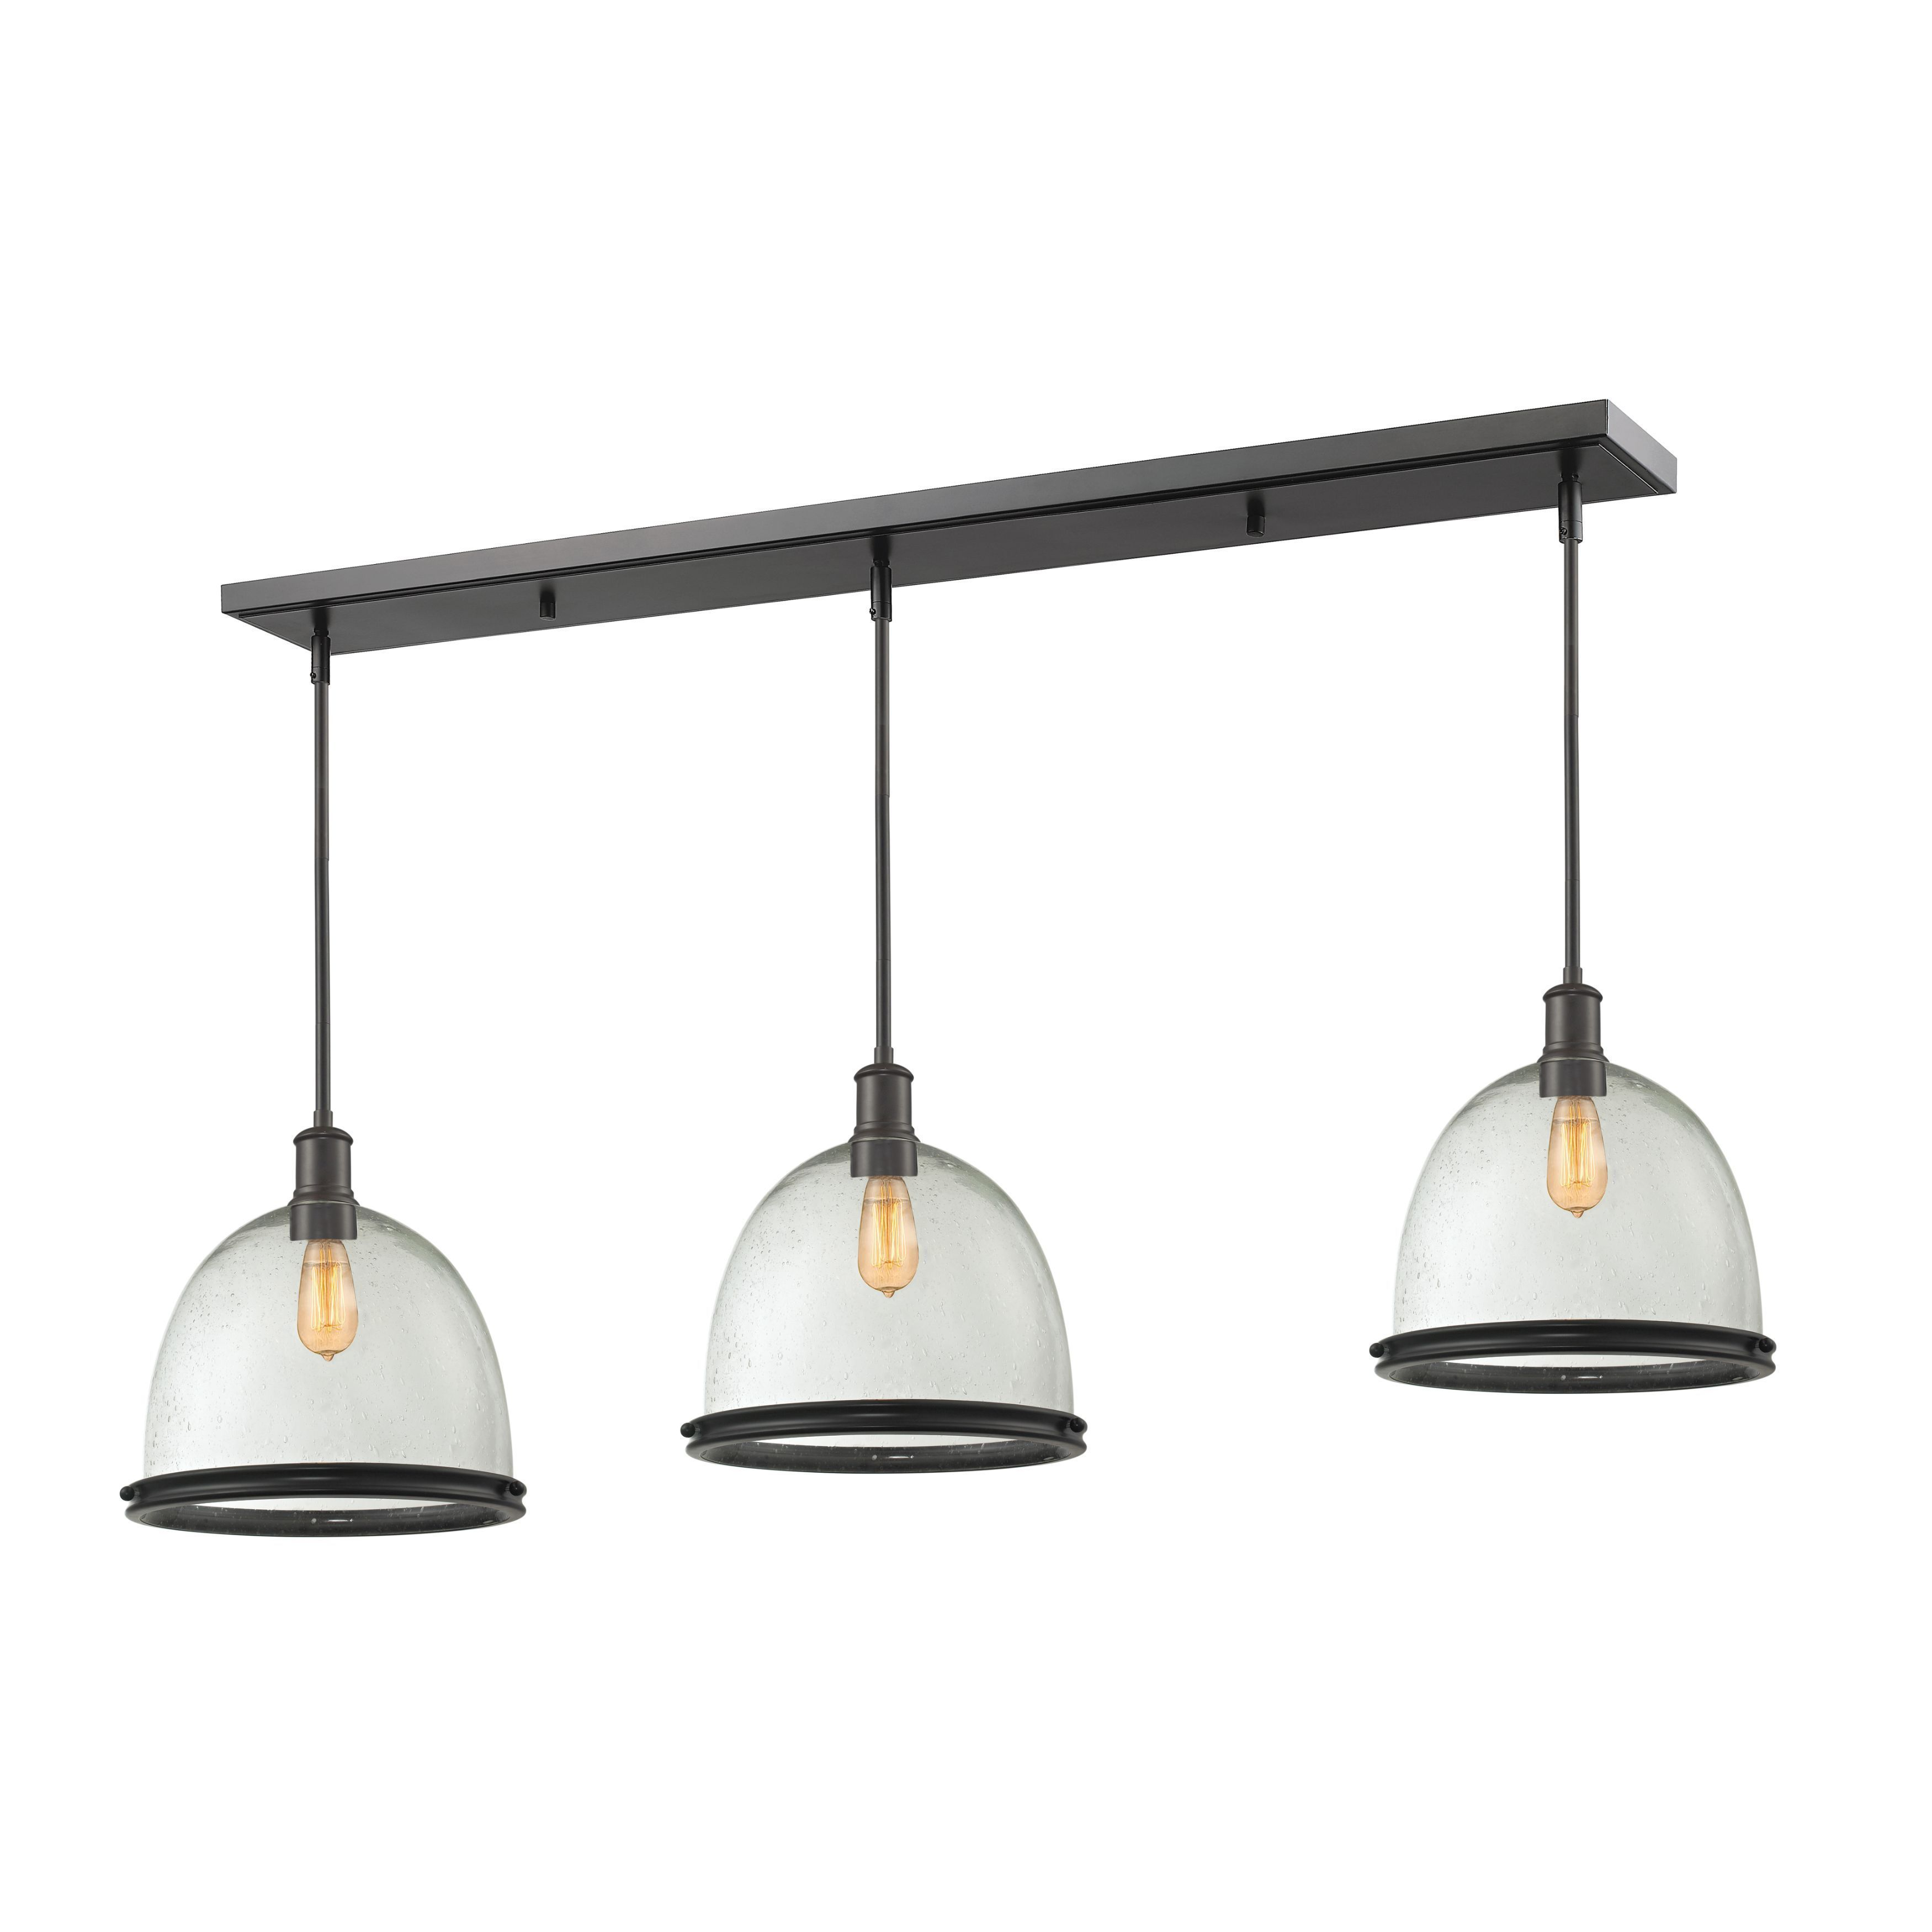 Z-Lite Bronze Finish with Clear Seedy Shade - Steel 3-light